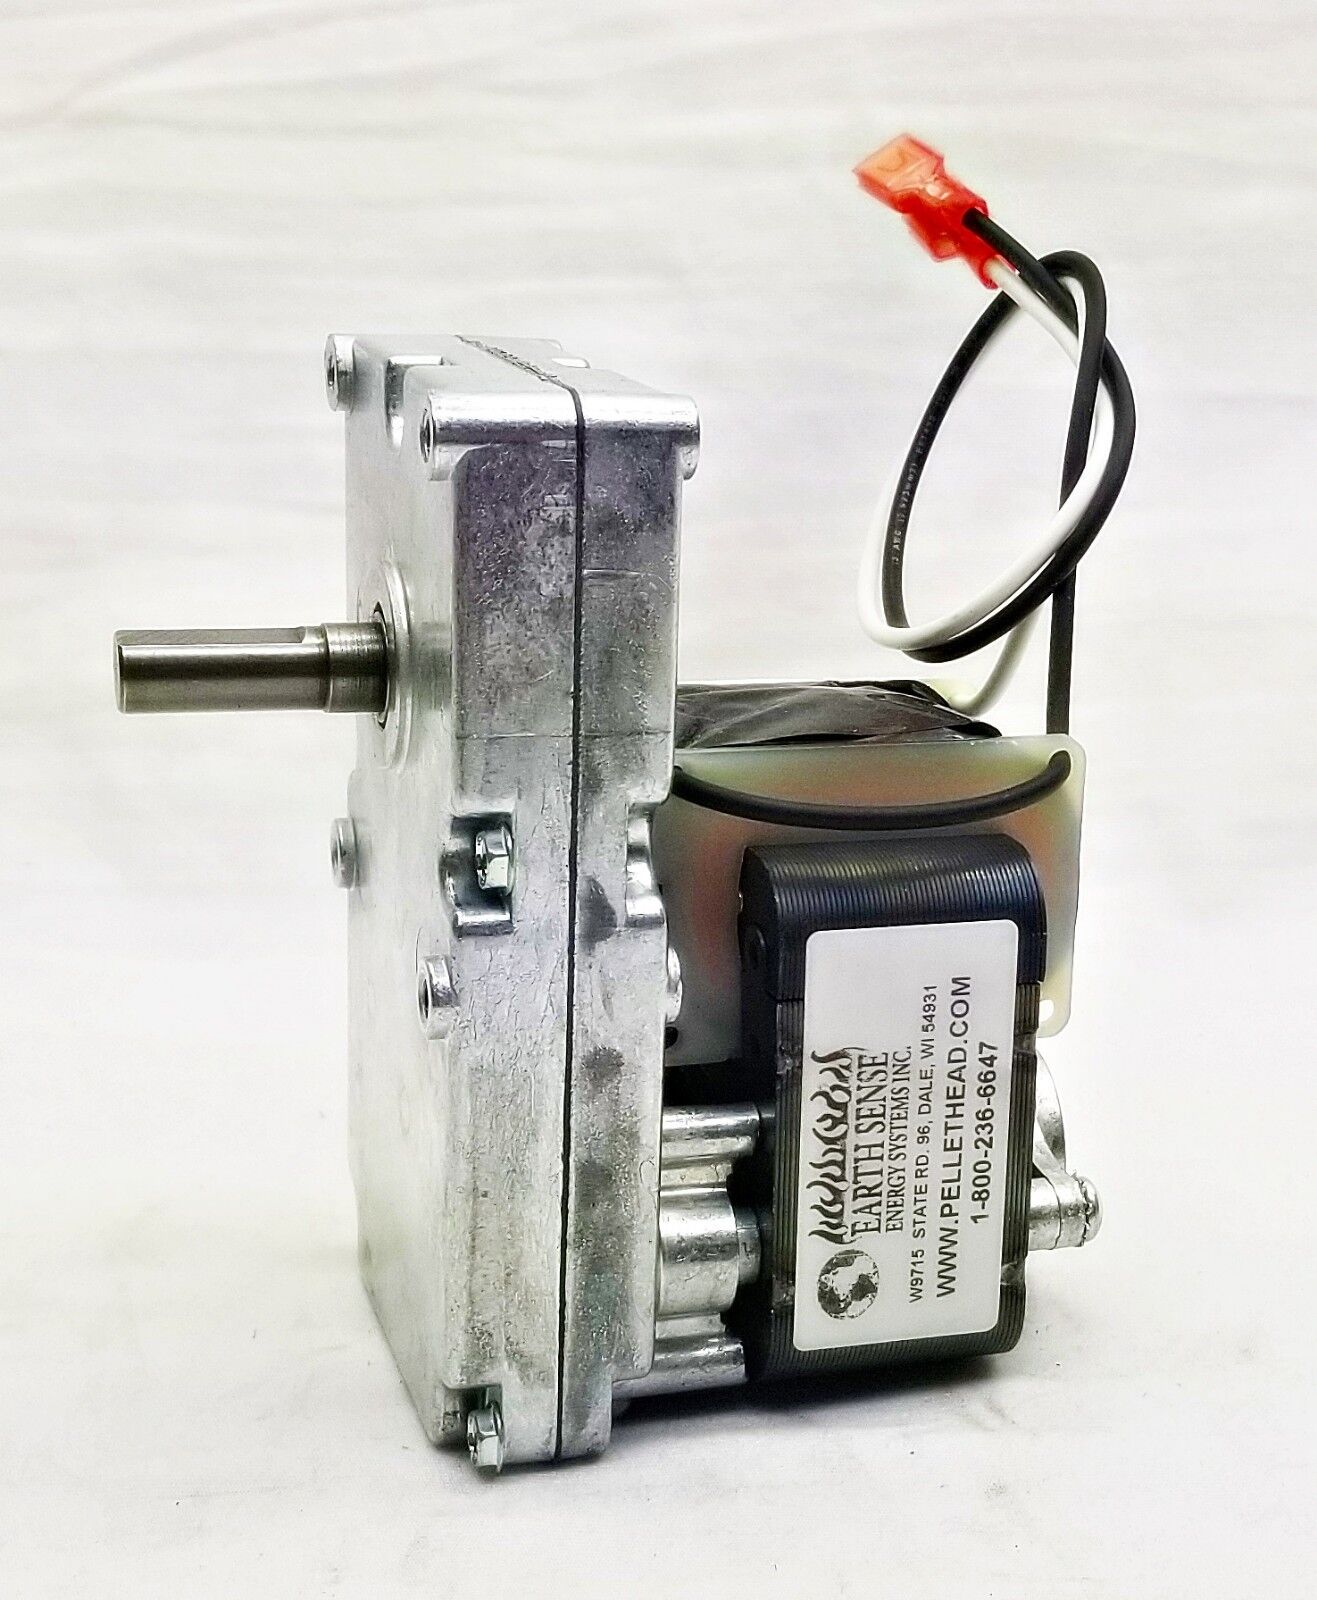 60Hz For Harman Pellet Stove Auger Gear Feed Motor 4RPM CW 120V